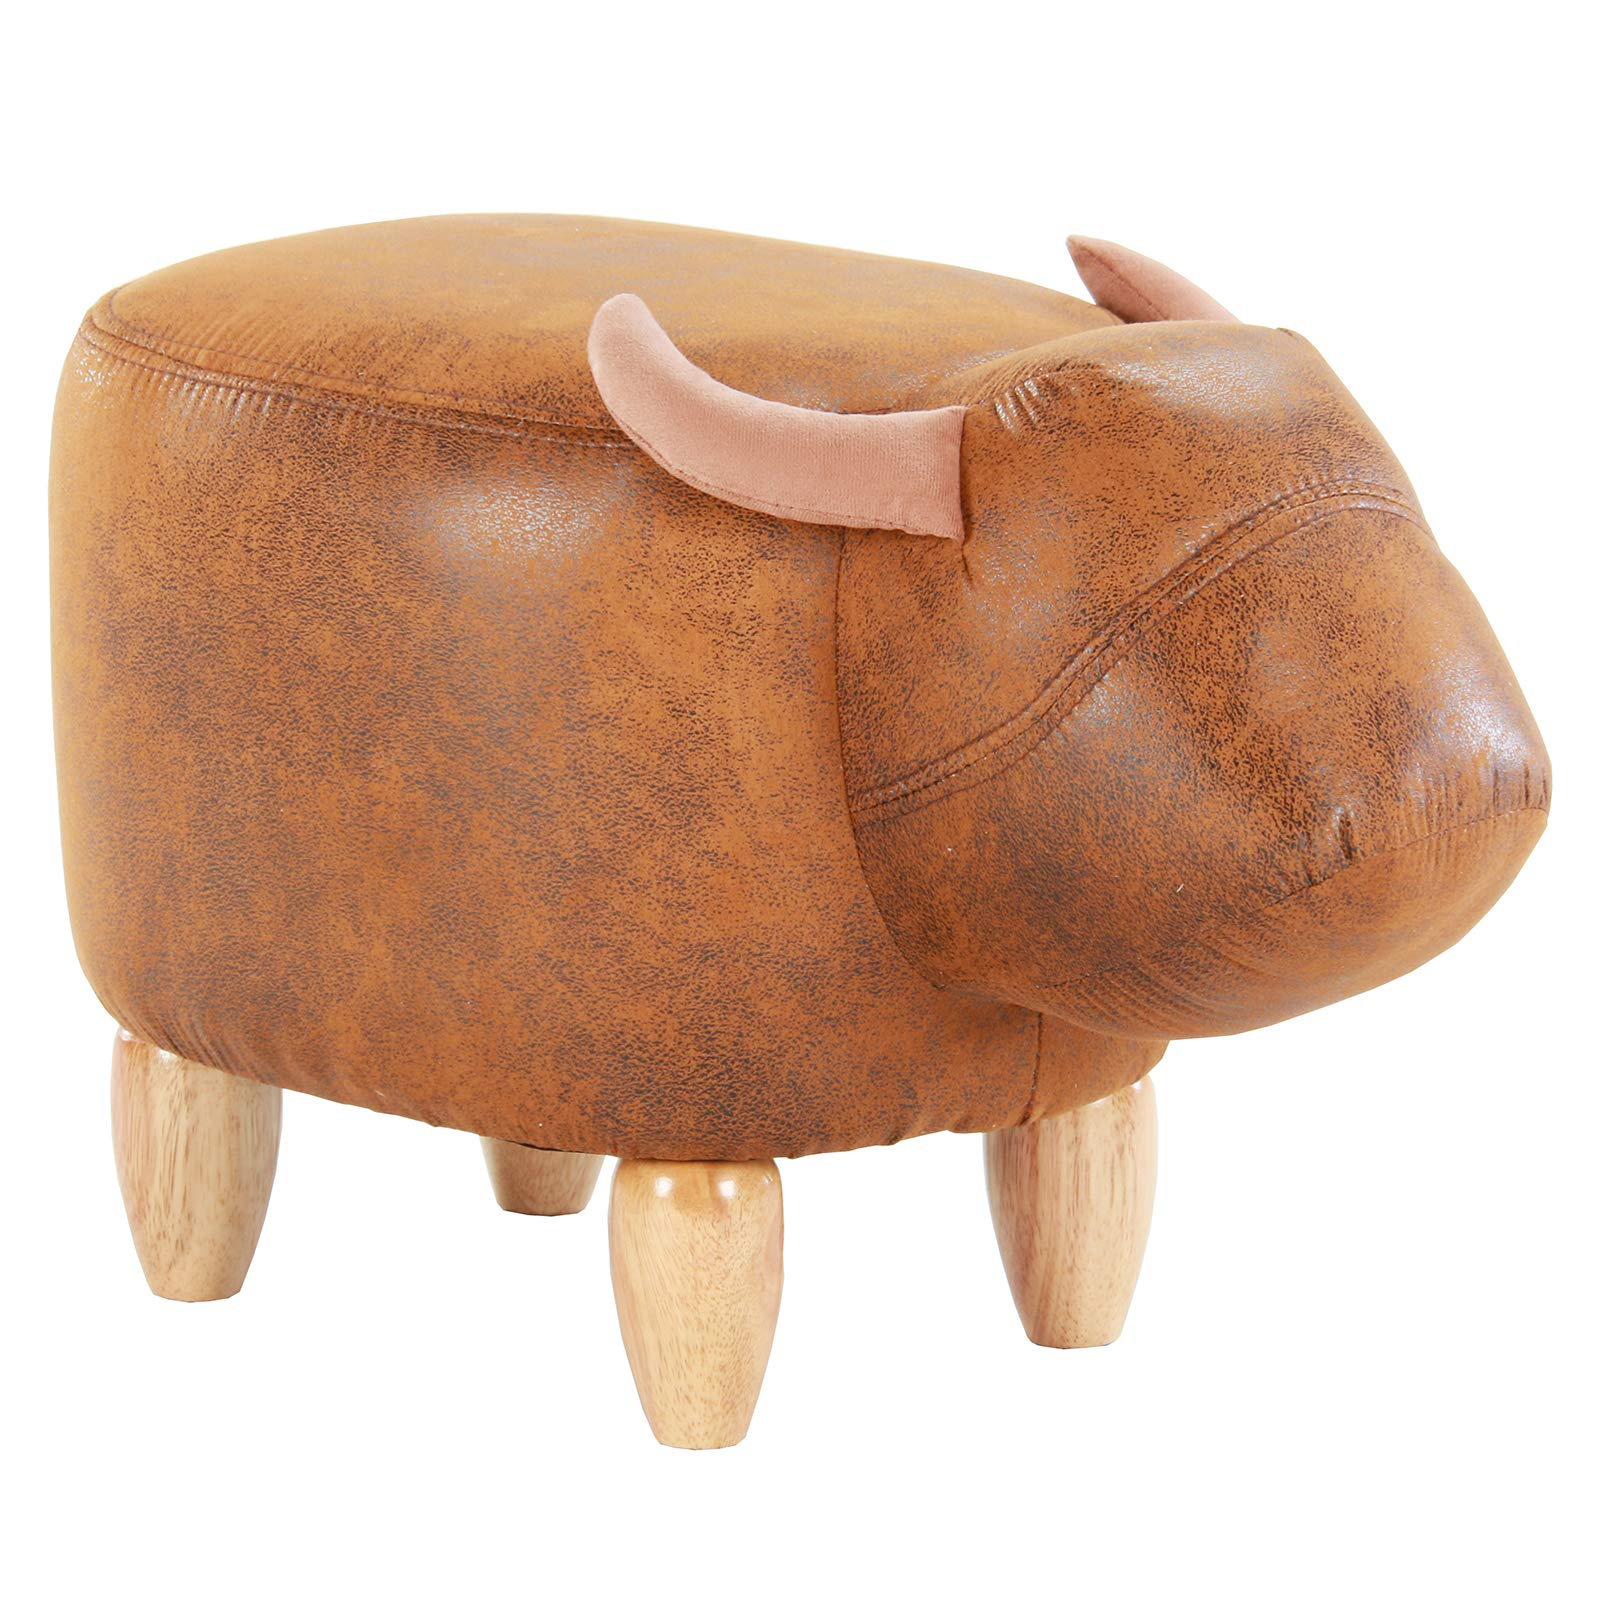 Artechworks Upholstered Ride-On Animal Ottoman Footrest Stool with Vivid Adorable Animal-Like Features,Perfect for Gift, Changing Shoes, Decoration, Toys, Without Storage(Brown Buffalo), Brown